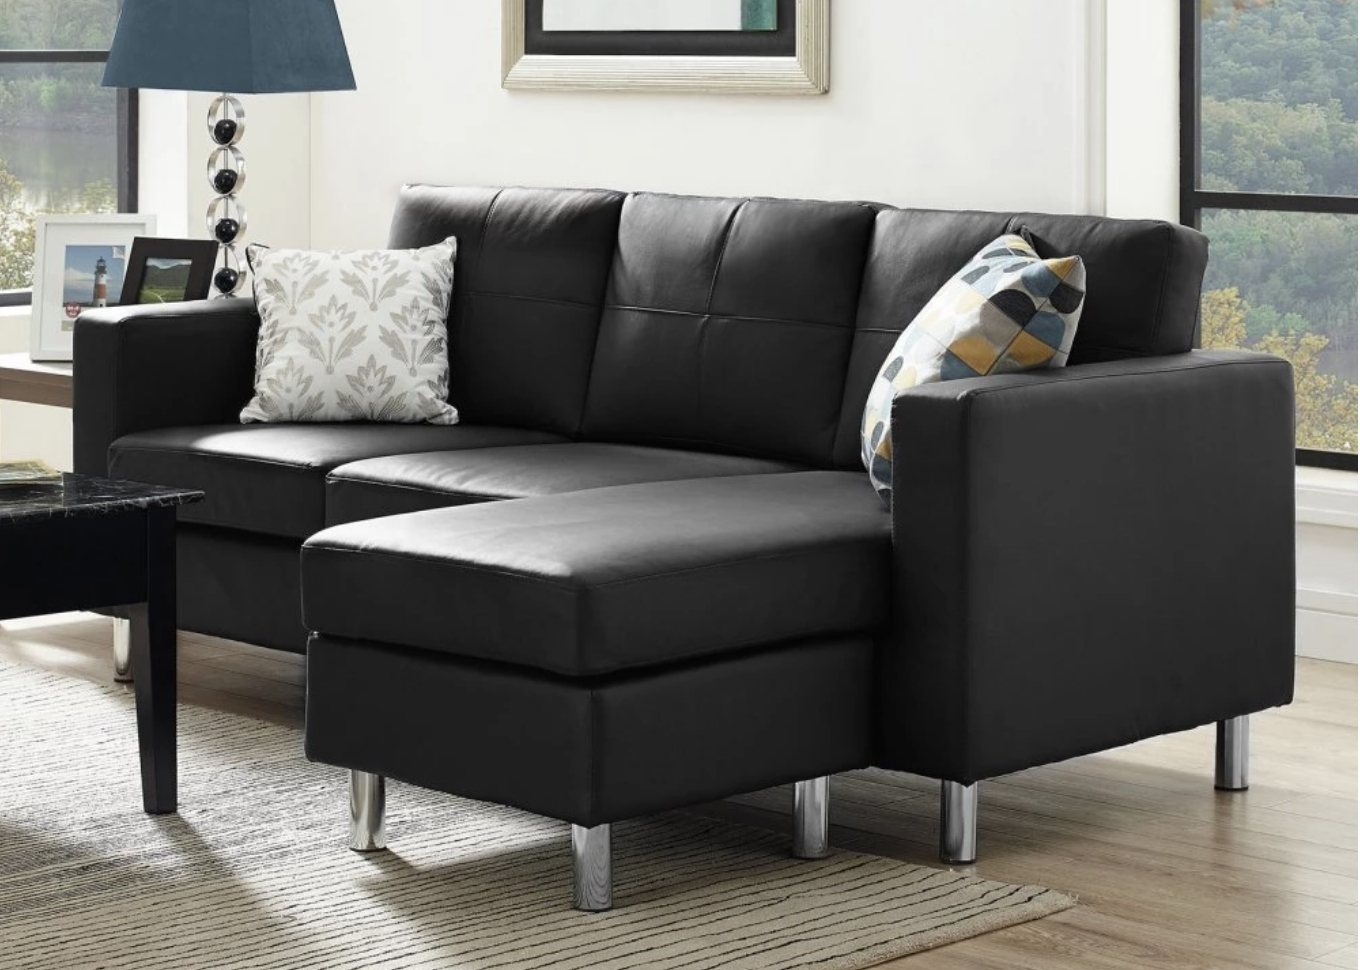 Well Known Sofas With High Backs Pertaining To 75 Modern Sectional Sofas For Small Spaces (2018) (View 12 of 15)